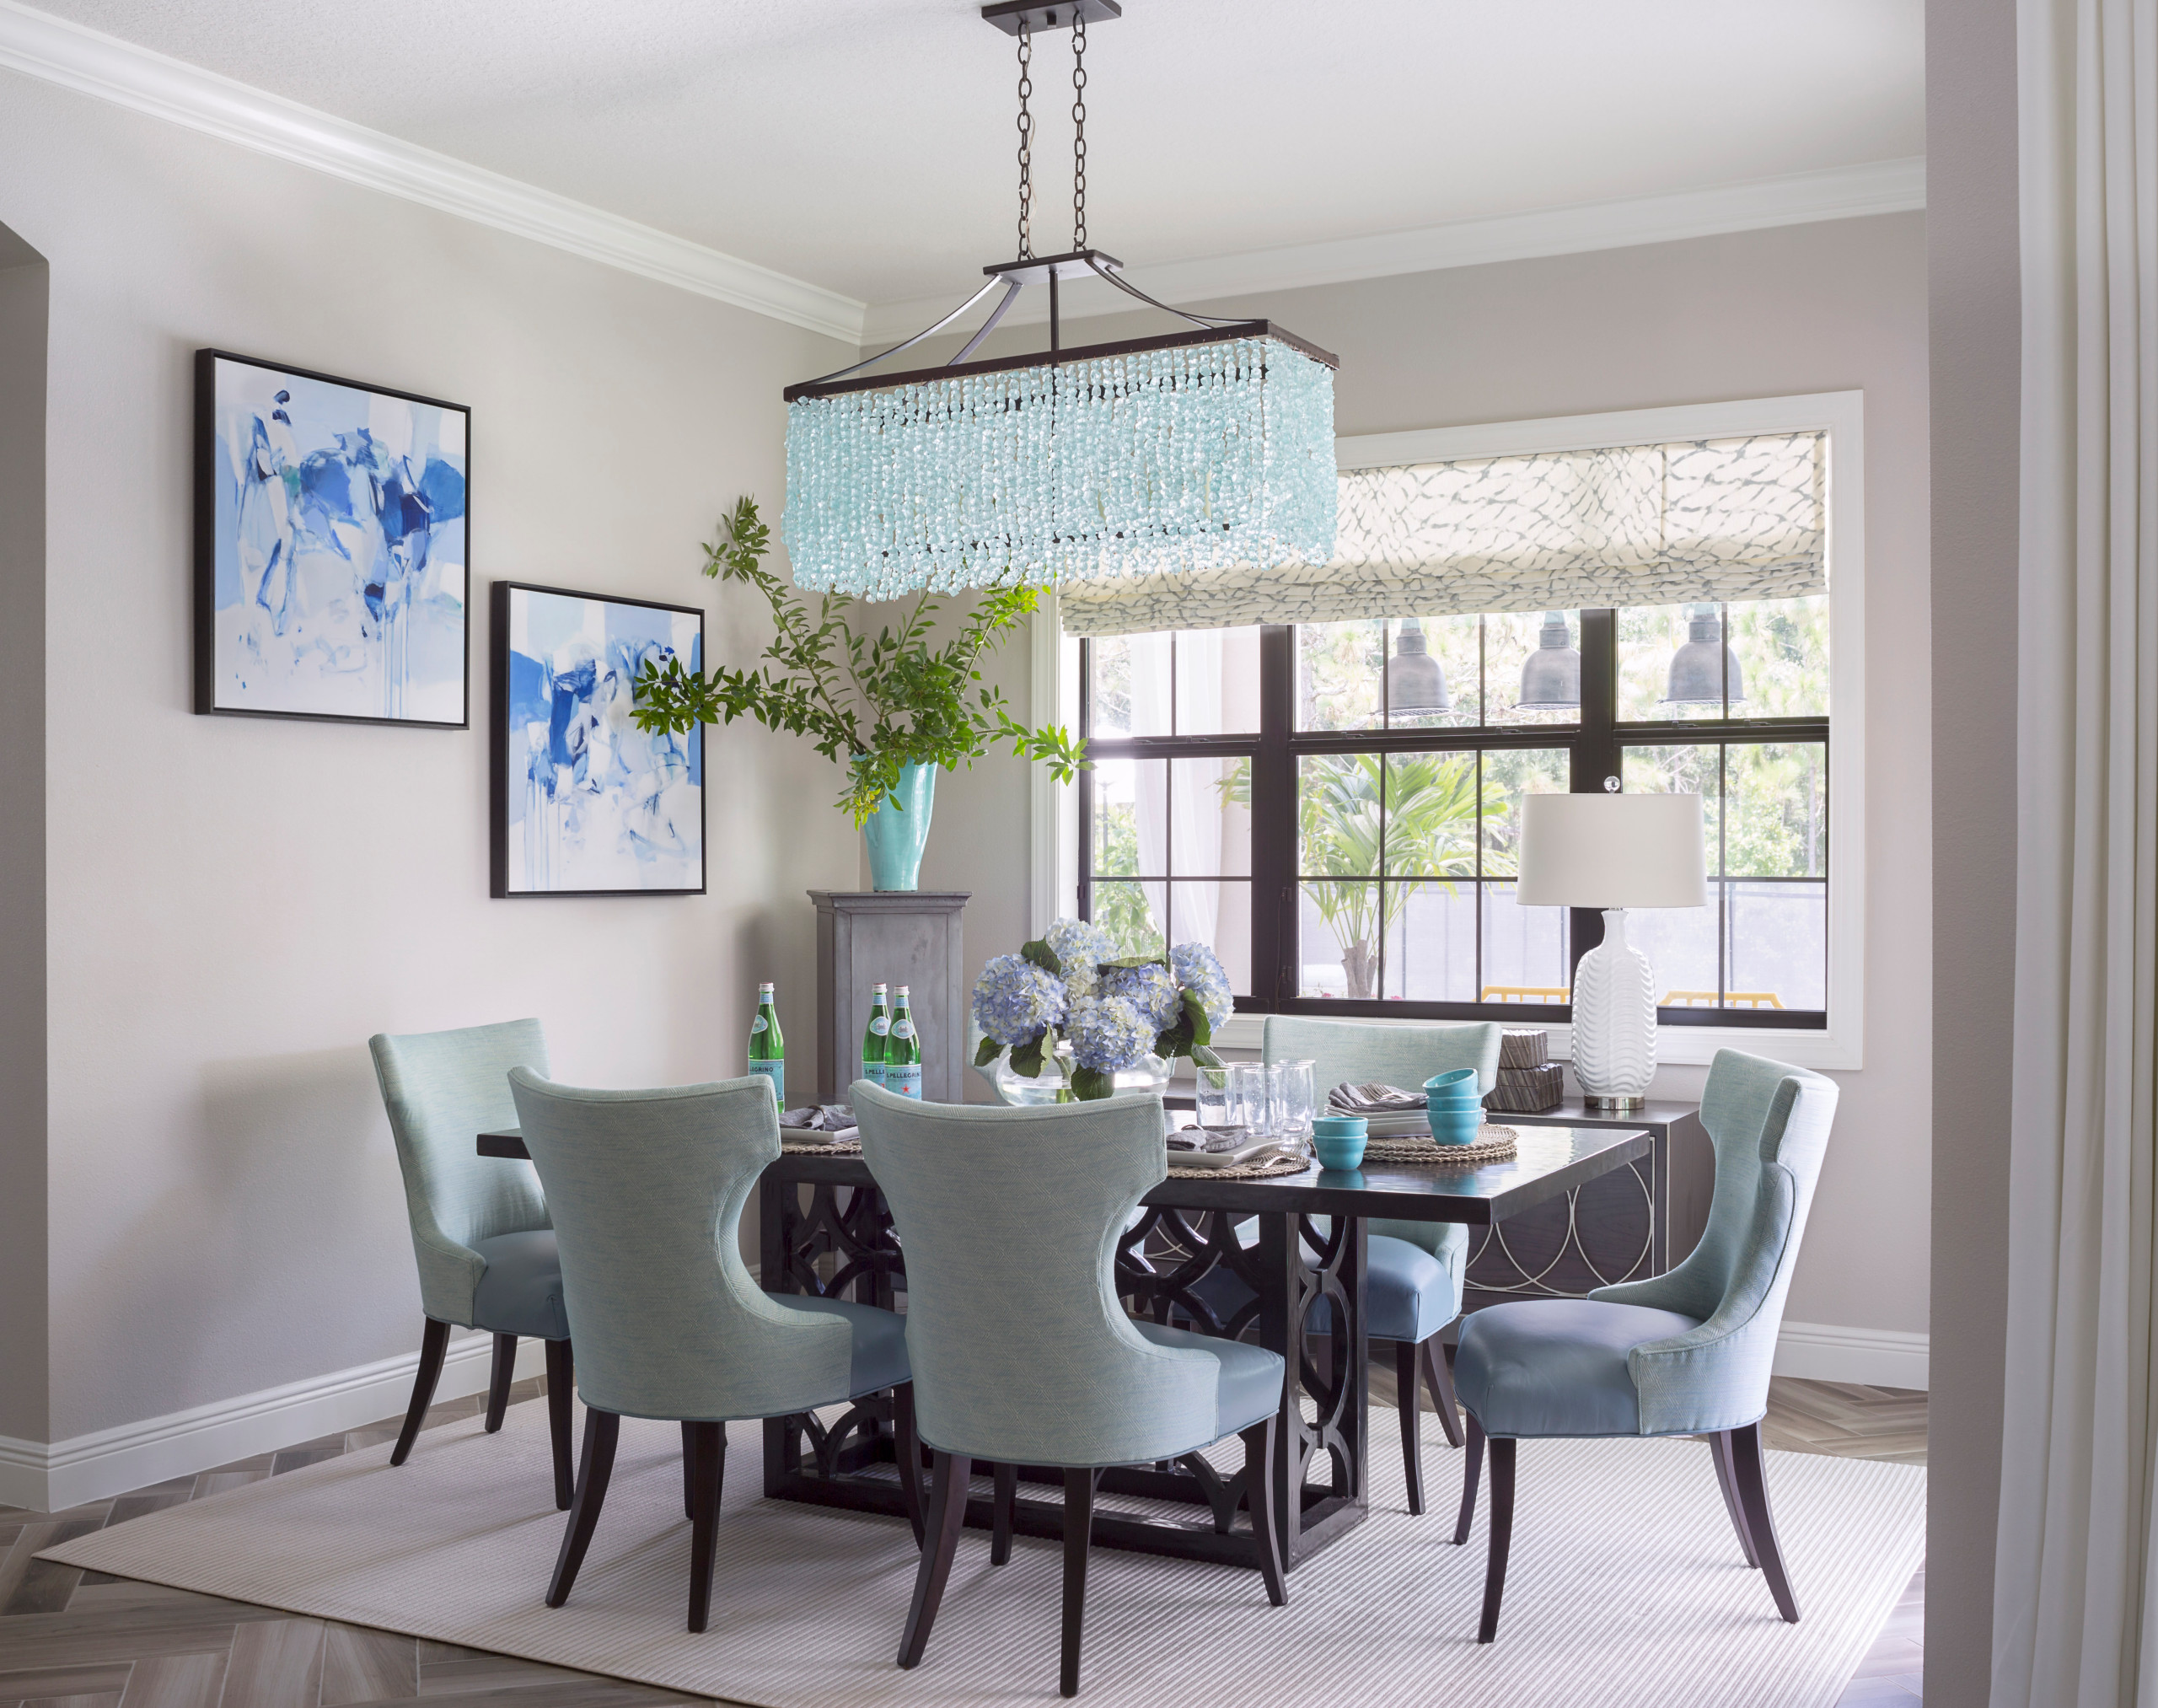 75 Beautiful Dining Room Pictures Ideas October 2020 Houzz